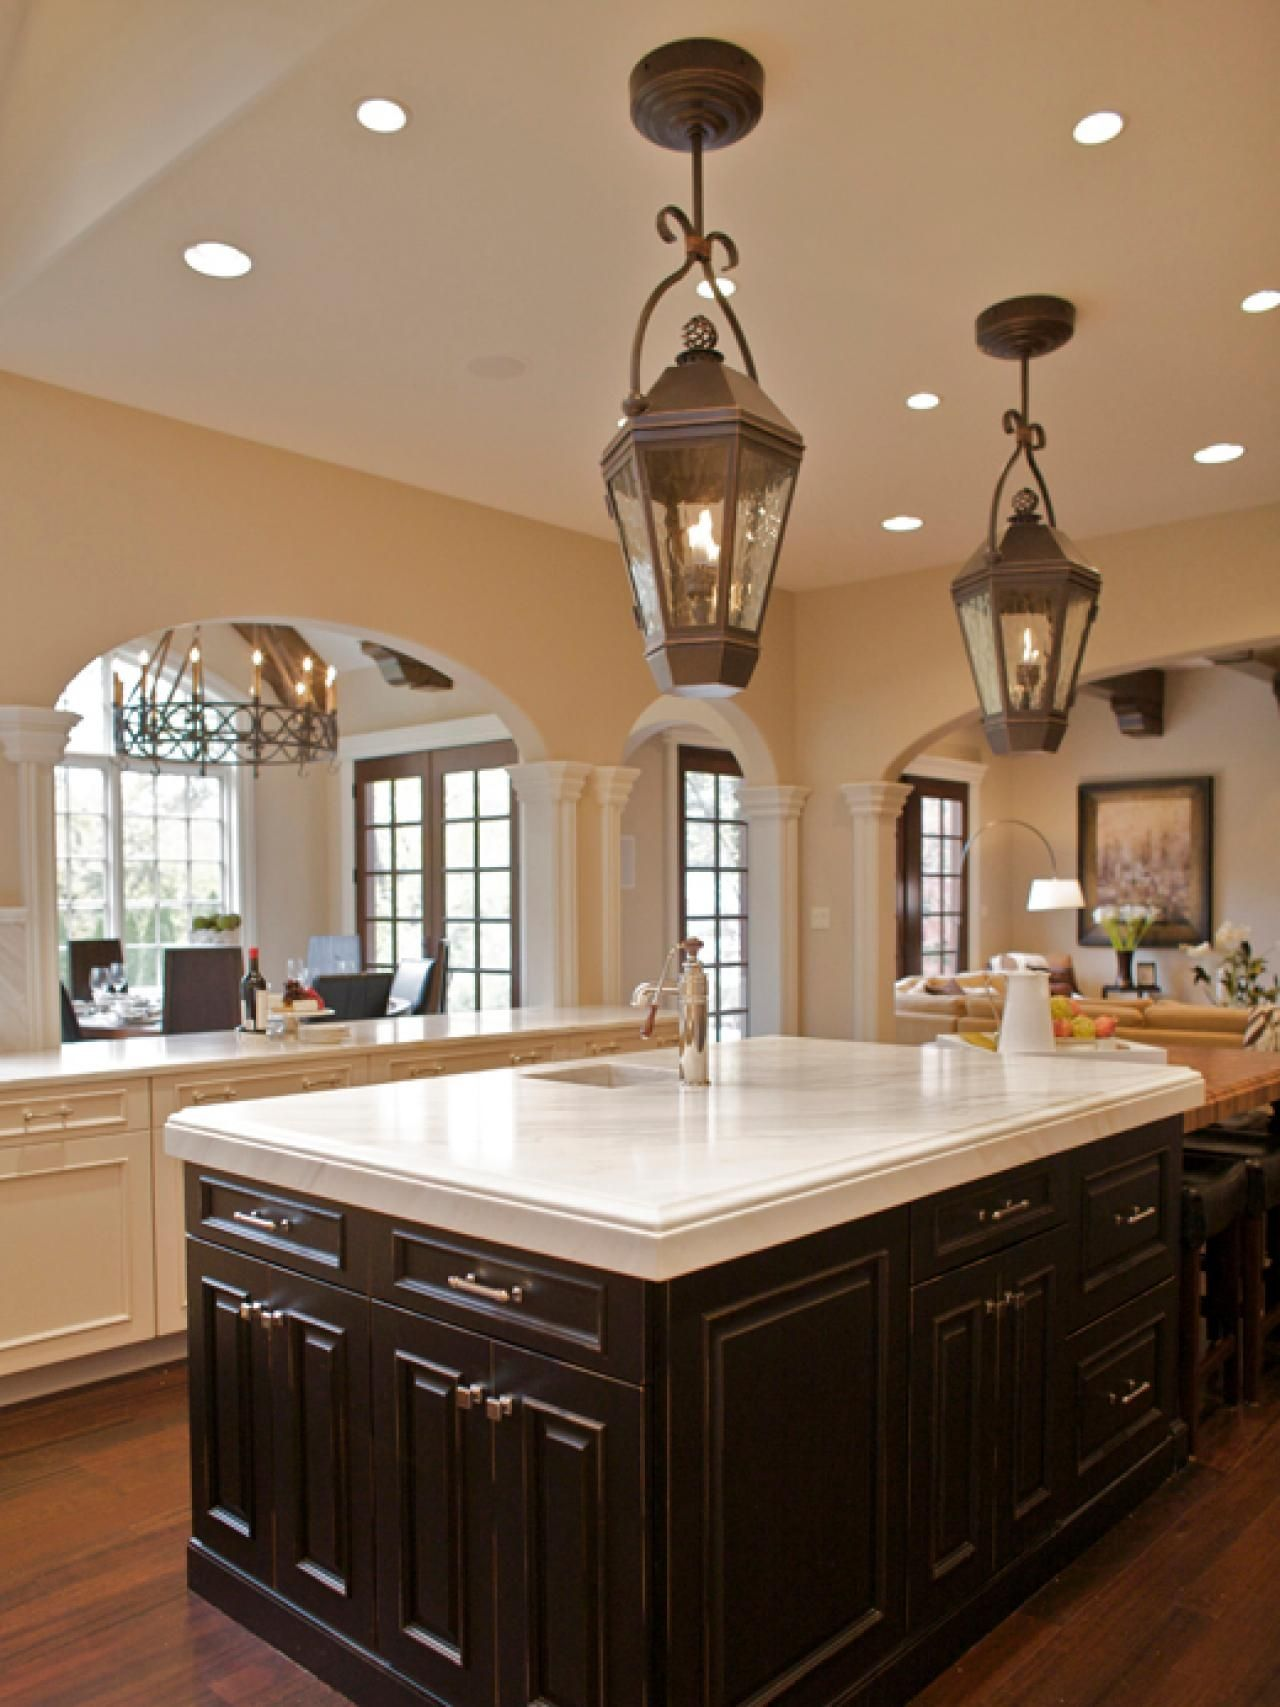 Hanging Lantern Lights For Kitchen Minimalist Kitchen Design